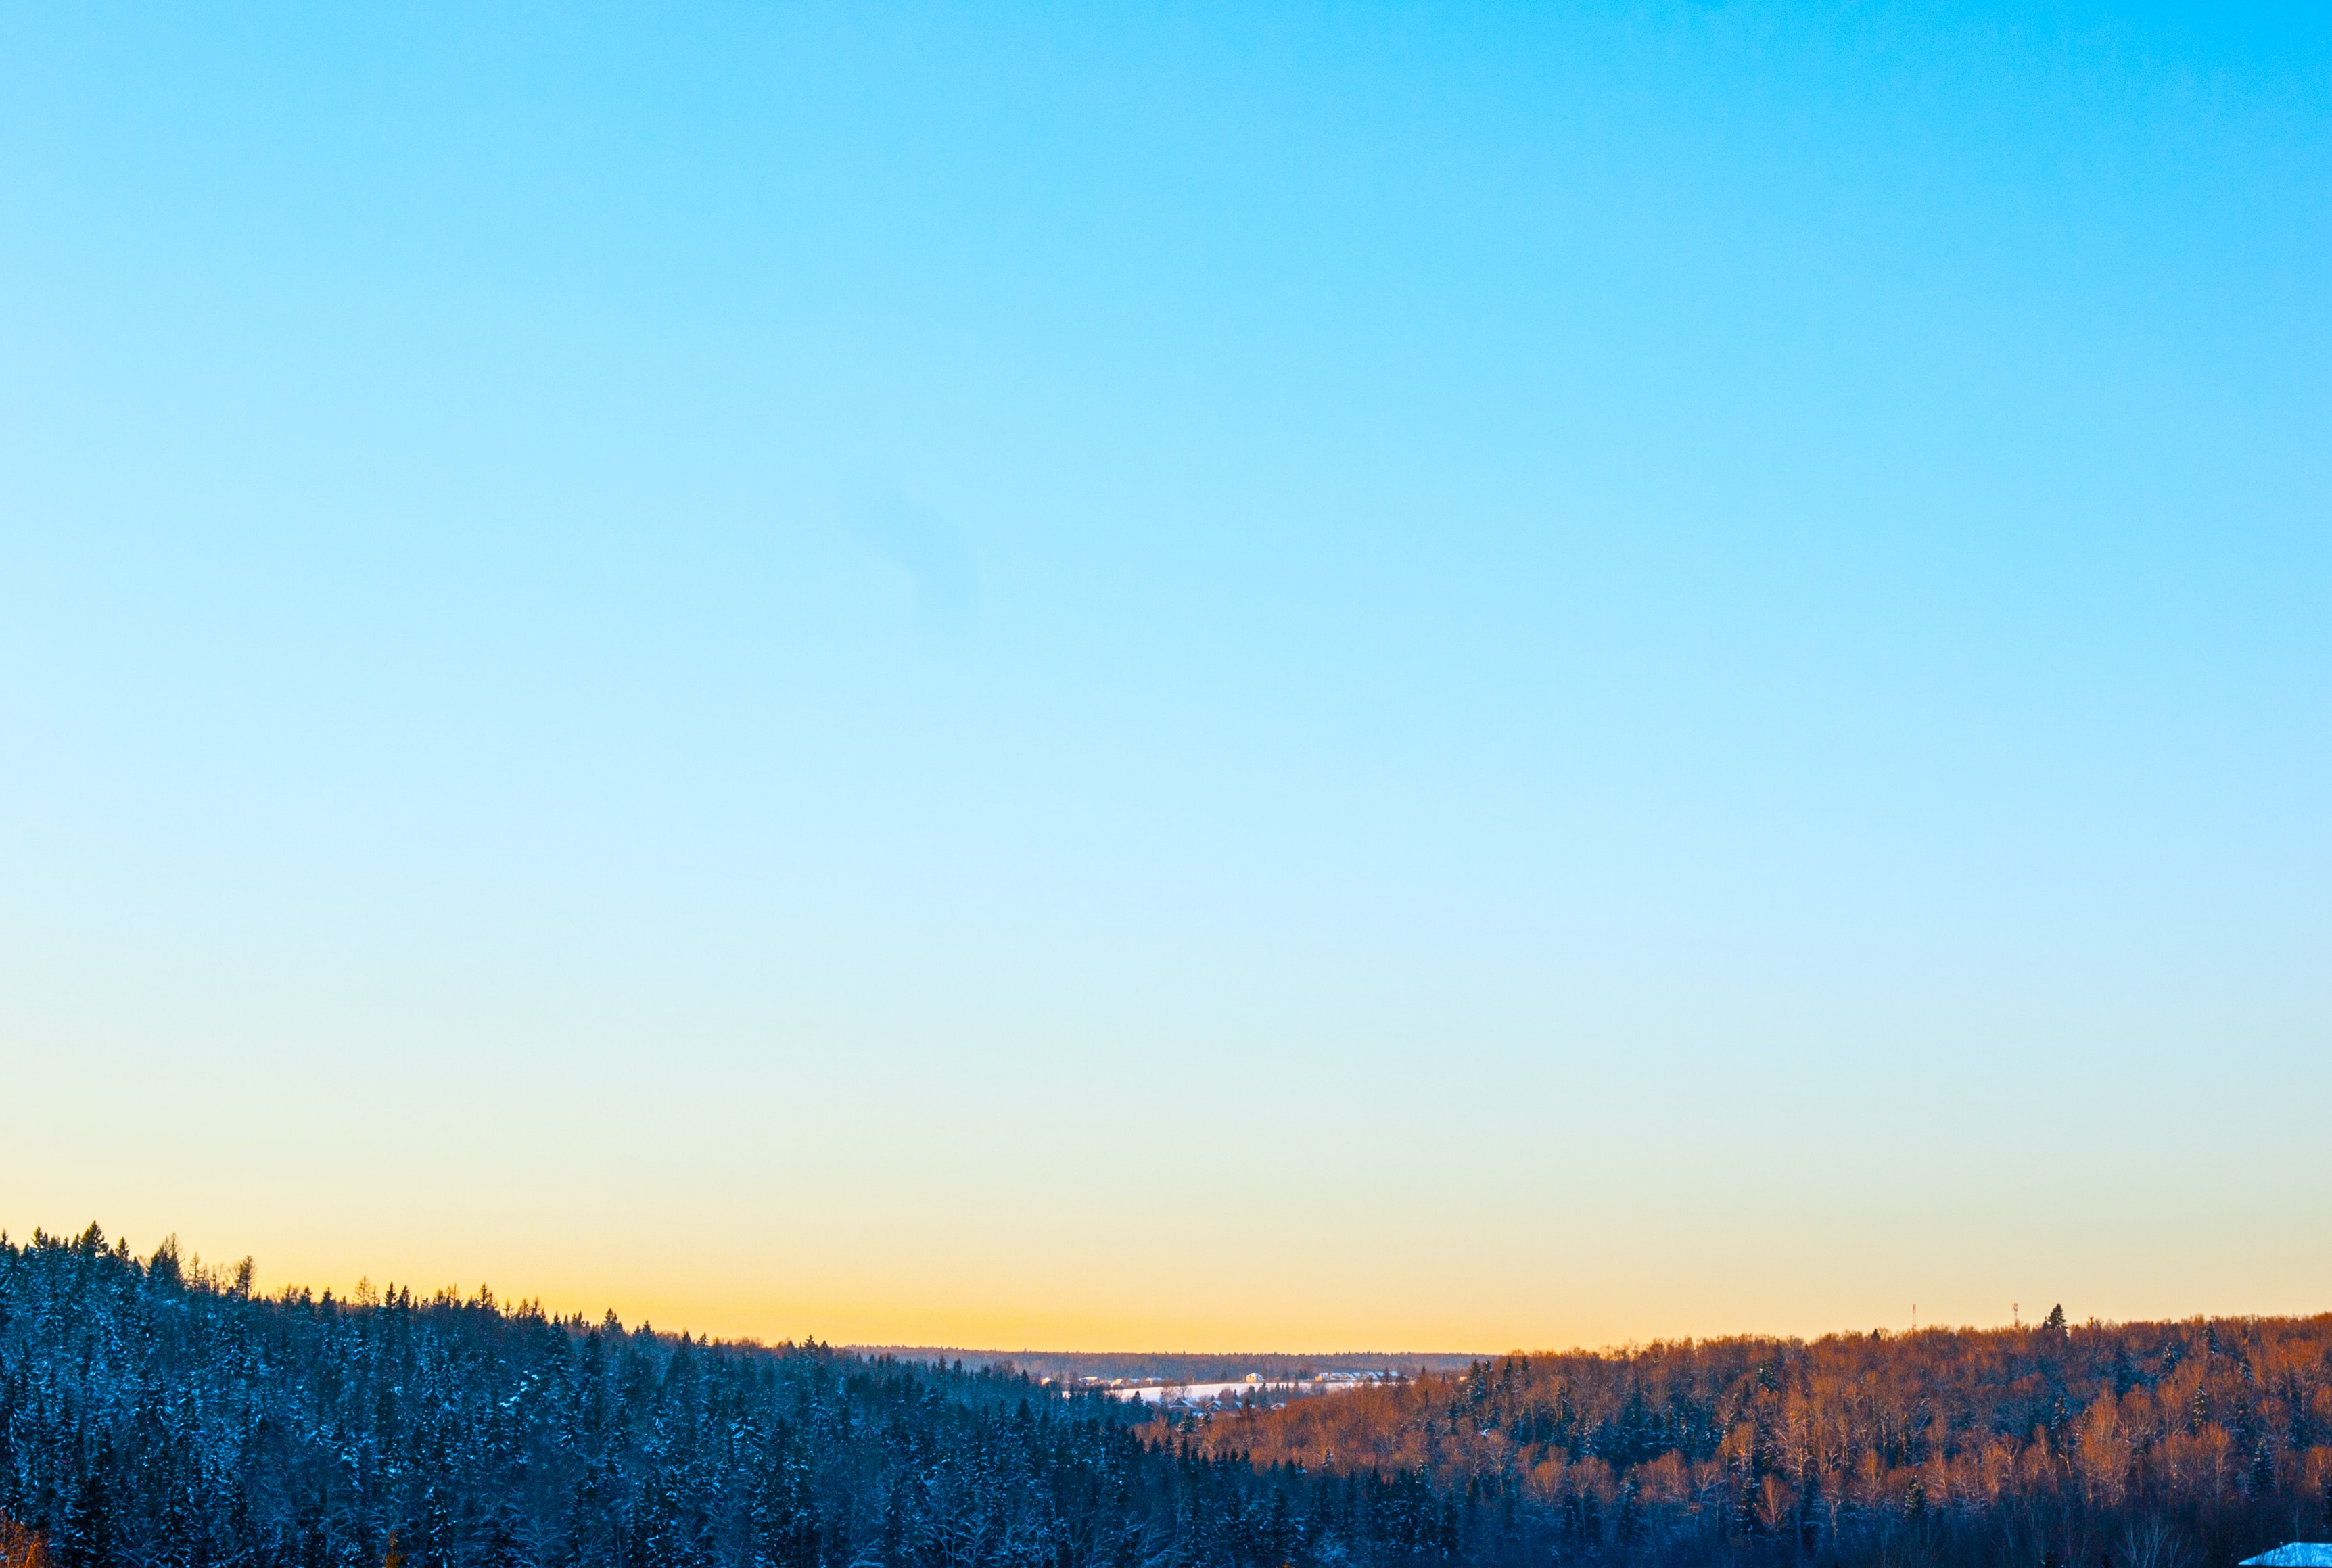 Coniferous forest in orange light and dark blue shade beneath a clear sky